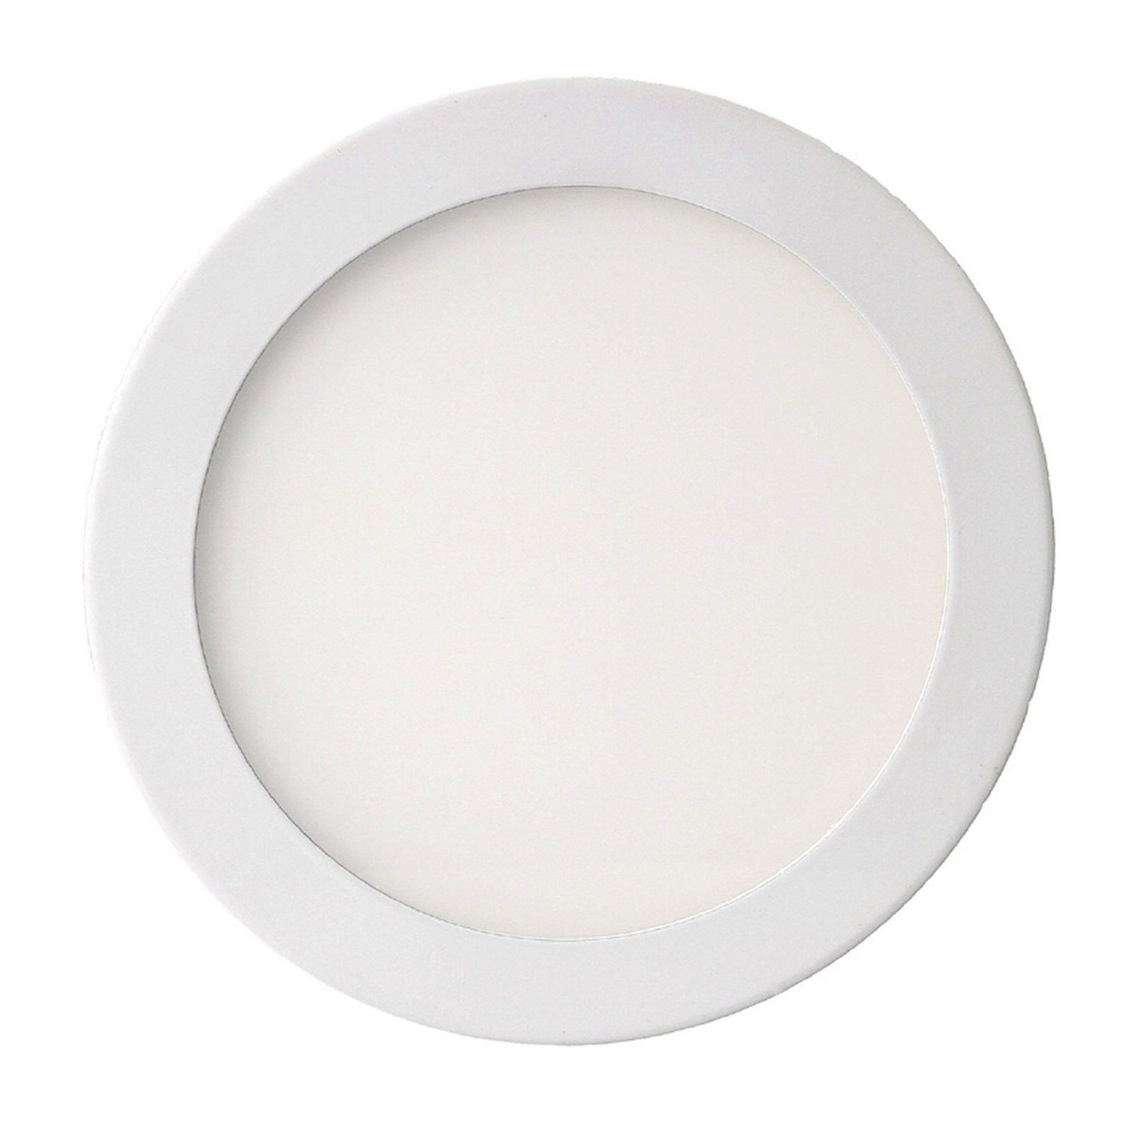 LED PANEL LIGHT 18w - rotondo luminosita 6500K